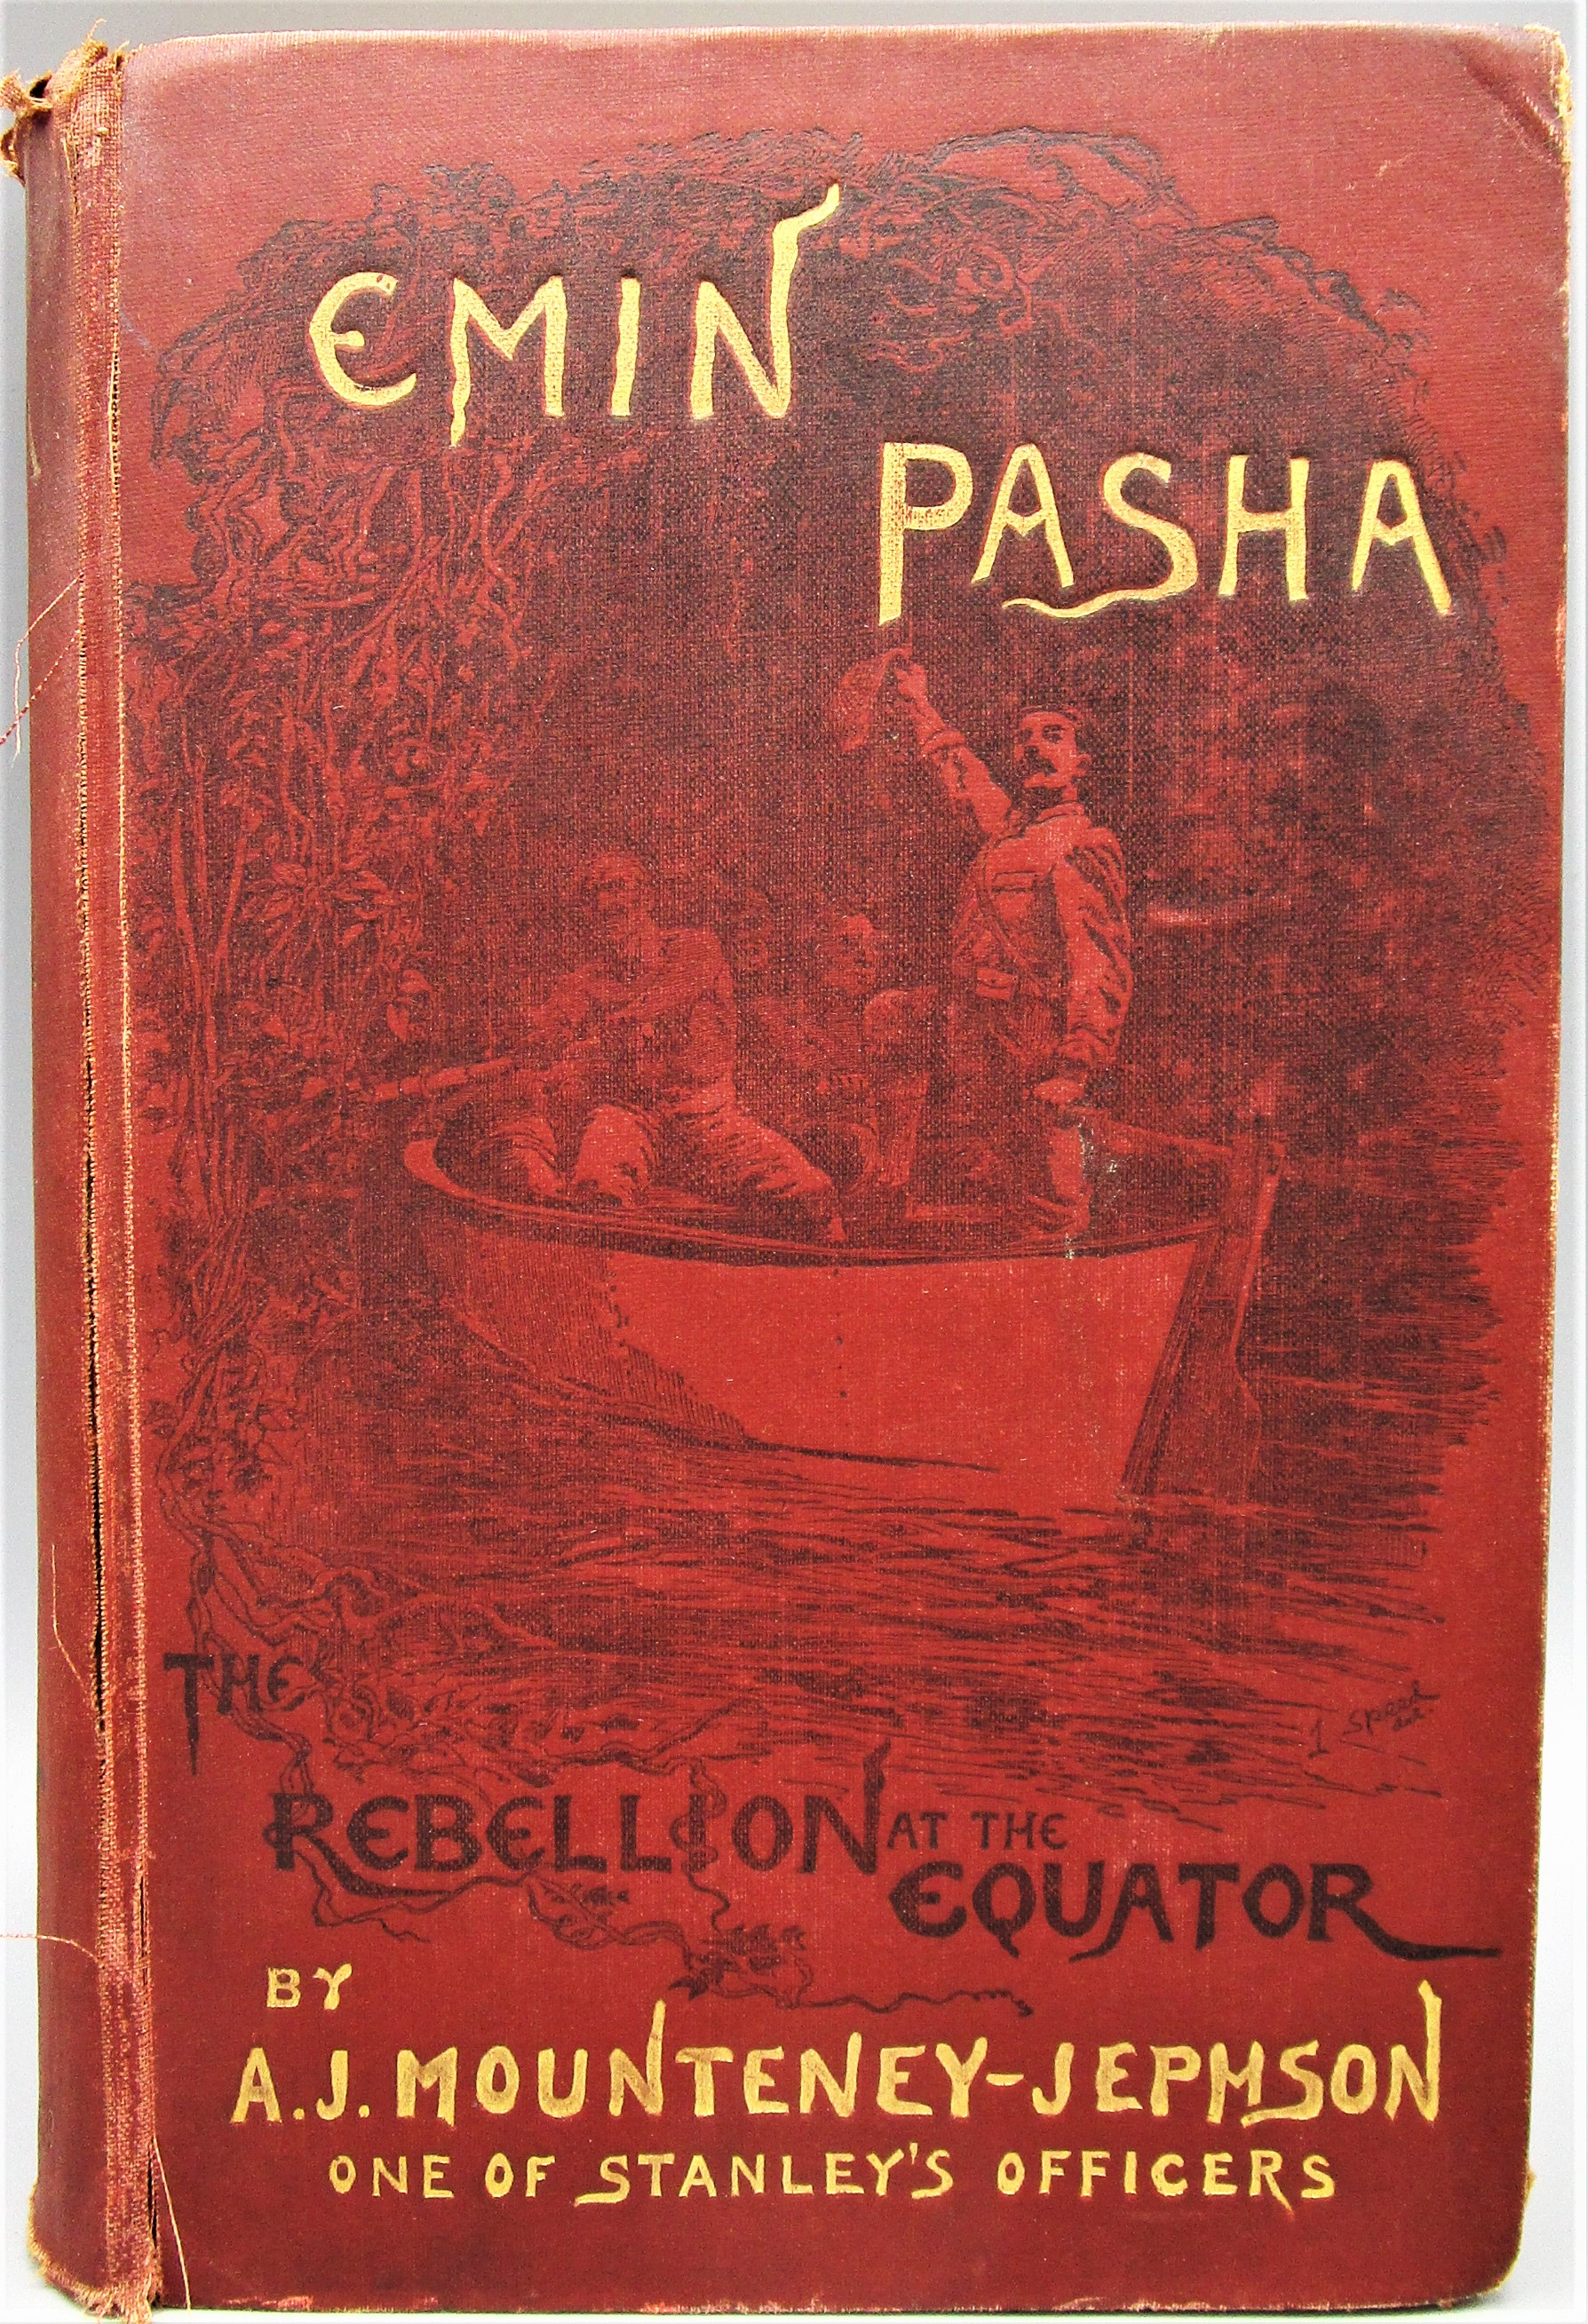 EMIN PASHA, by A. J. Mounteney-Jephson - 1890 [Signed]